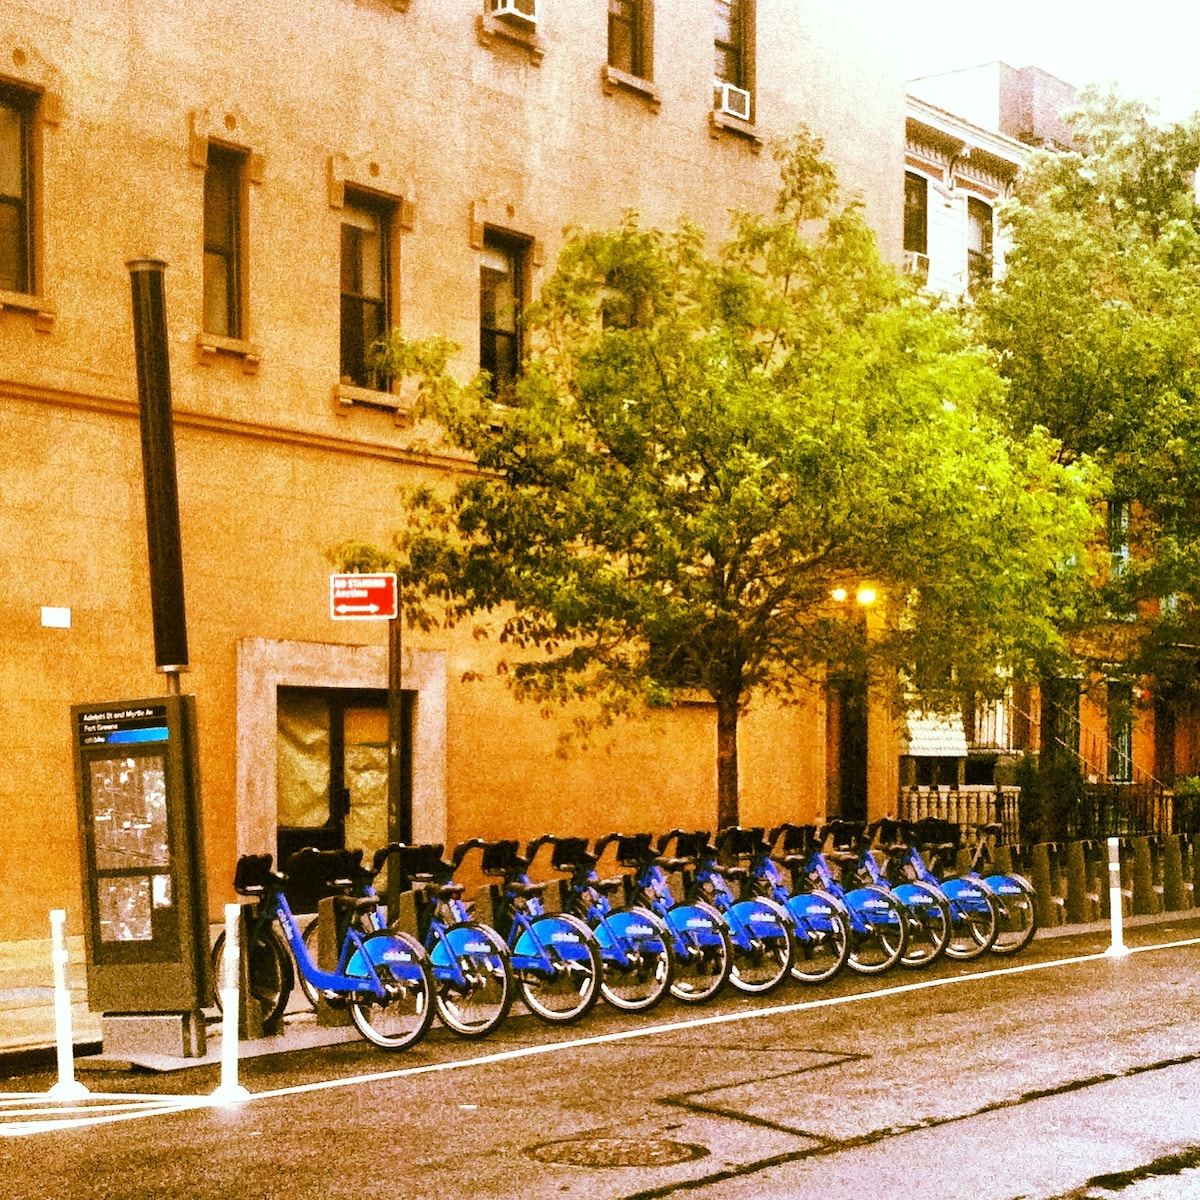 CITI BIKES IS RIGHT OUTSIDE MY BUILDING